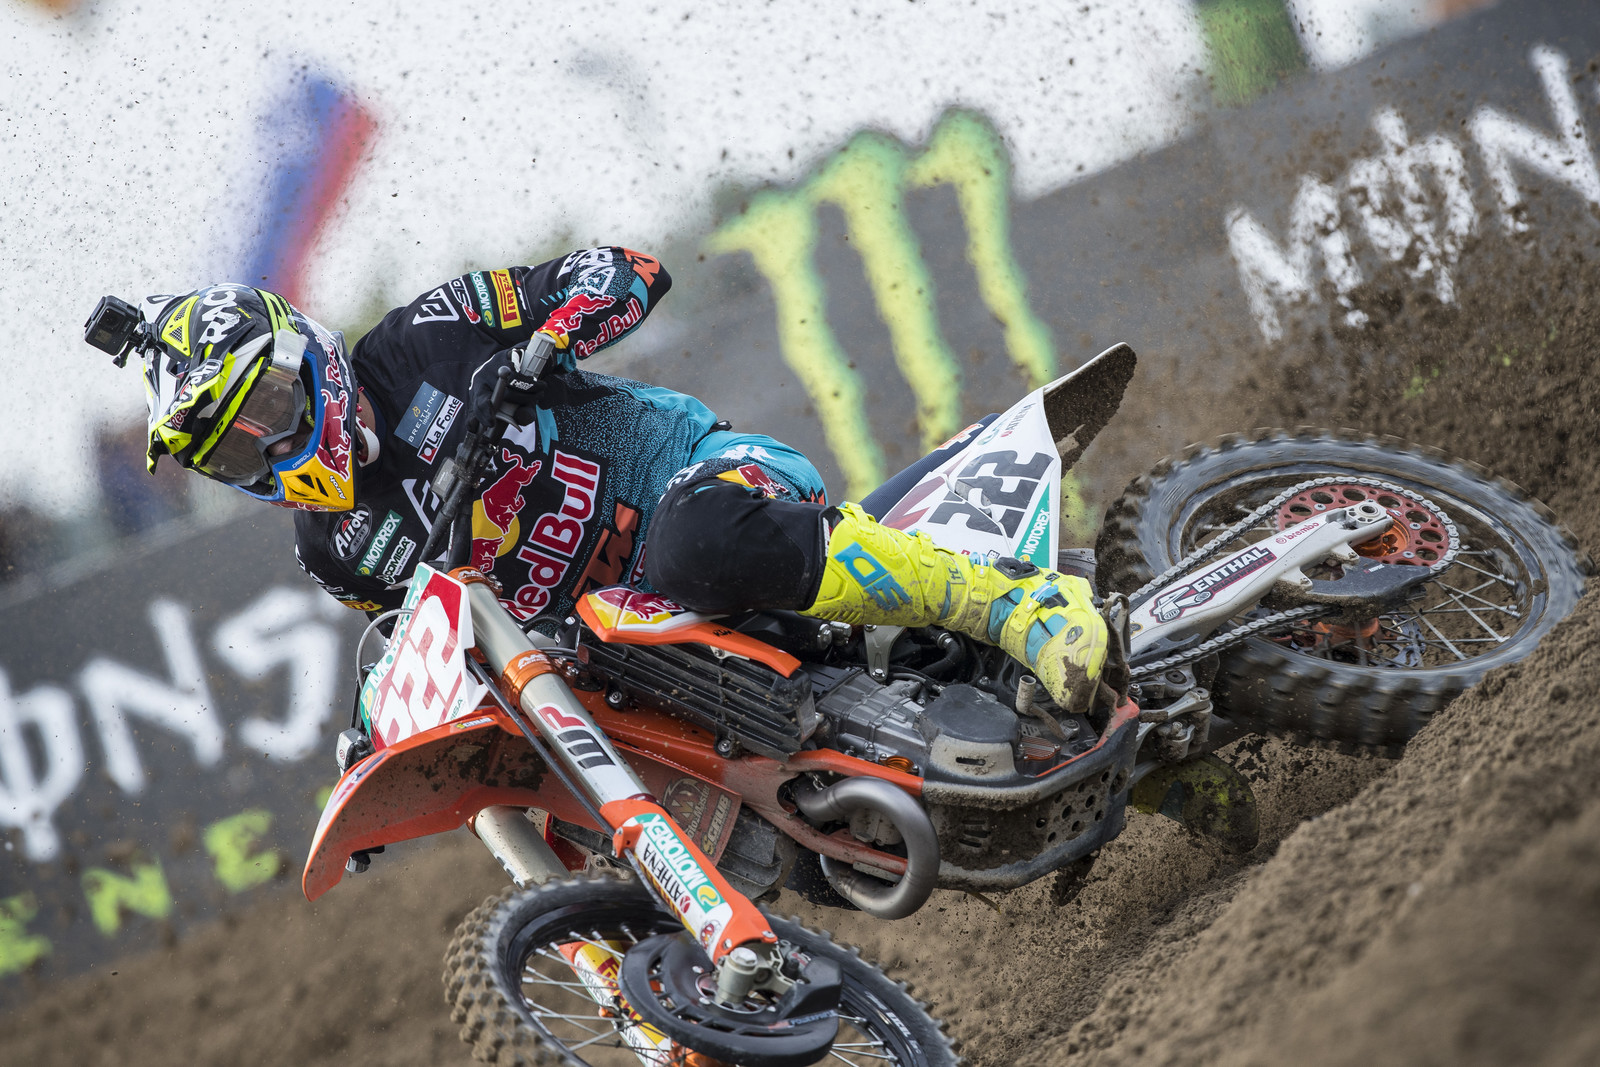 Red Bull KTM's Tony Cairoli is continuing his domination of the 2019 MXGPs, going 1 - 1 for the overall victory. The only way to stay clean at this race was to get the holeshot and run away with it.